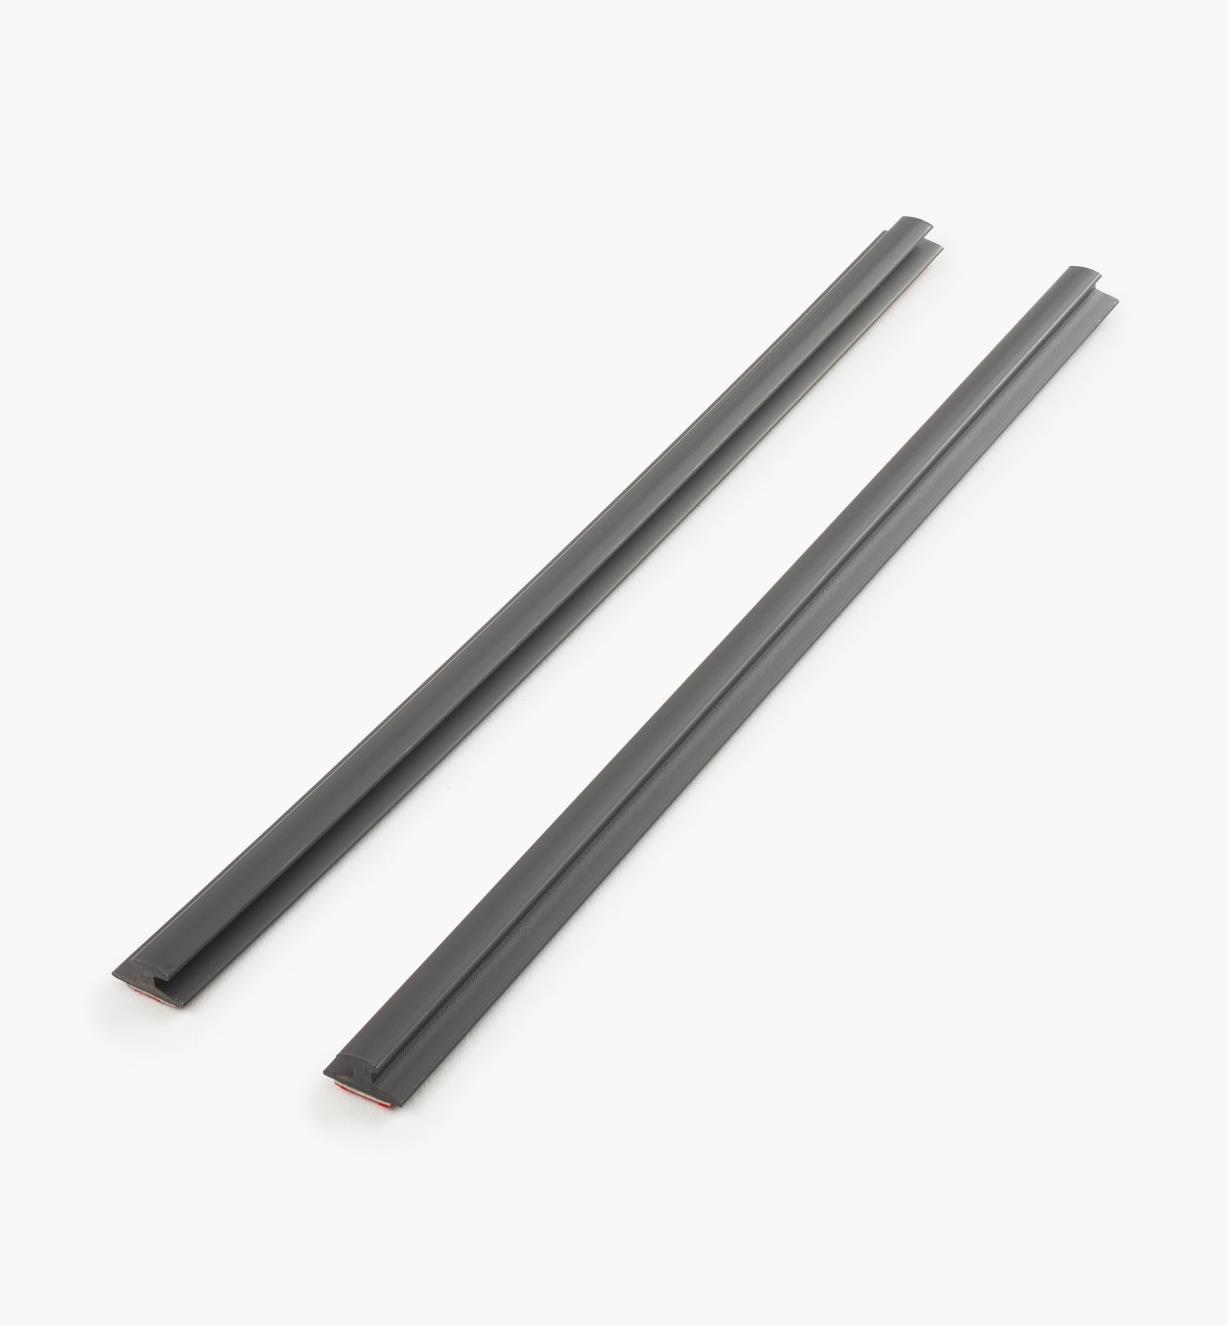 05H3201 - Coffee Cartridge Rails, pair